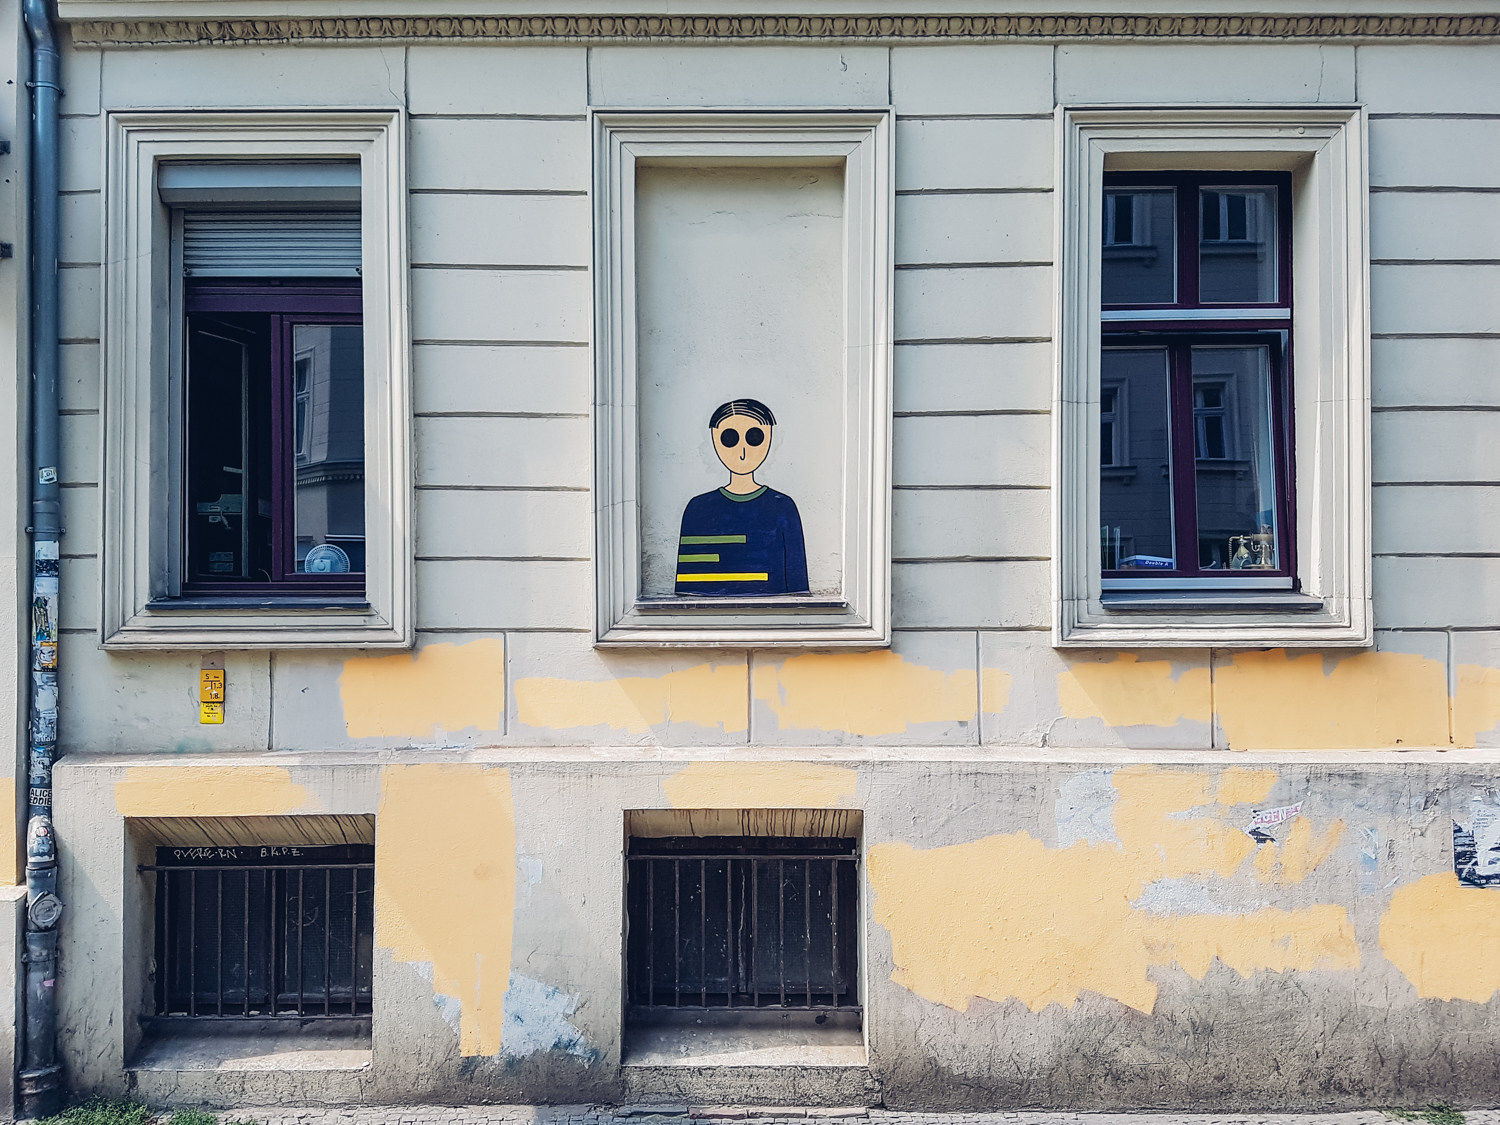 The Mysterious New Street Art Characters in Berlin